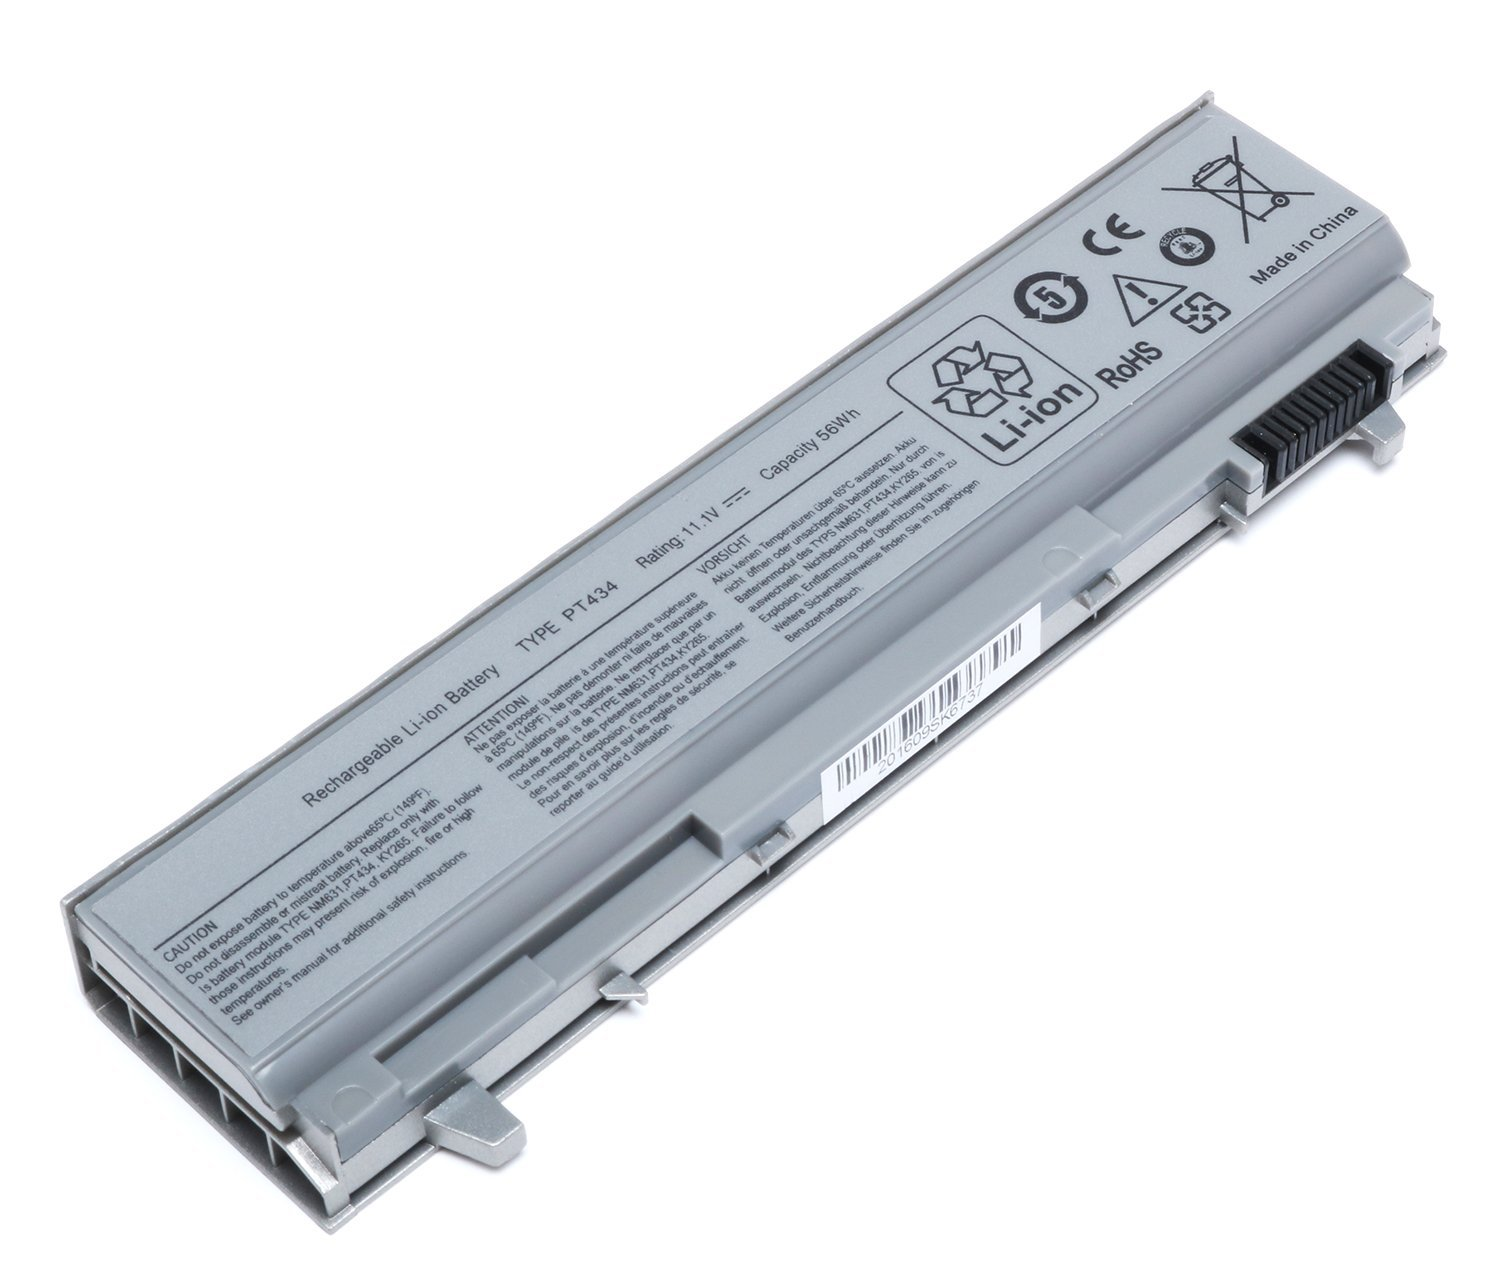 11.1V 56Wh 6-Cell New Laptop Battery for Dell PT434 Latitude E6400 E6410 E6500 E6510 Precision M2400 M4400 M4500 M6500 P/N: 4M529 KY265 KY470 KY471 PT434 NM631 312-0749 312-0748